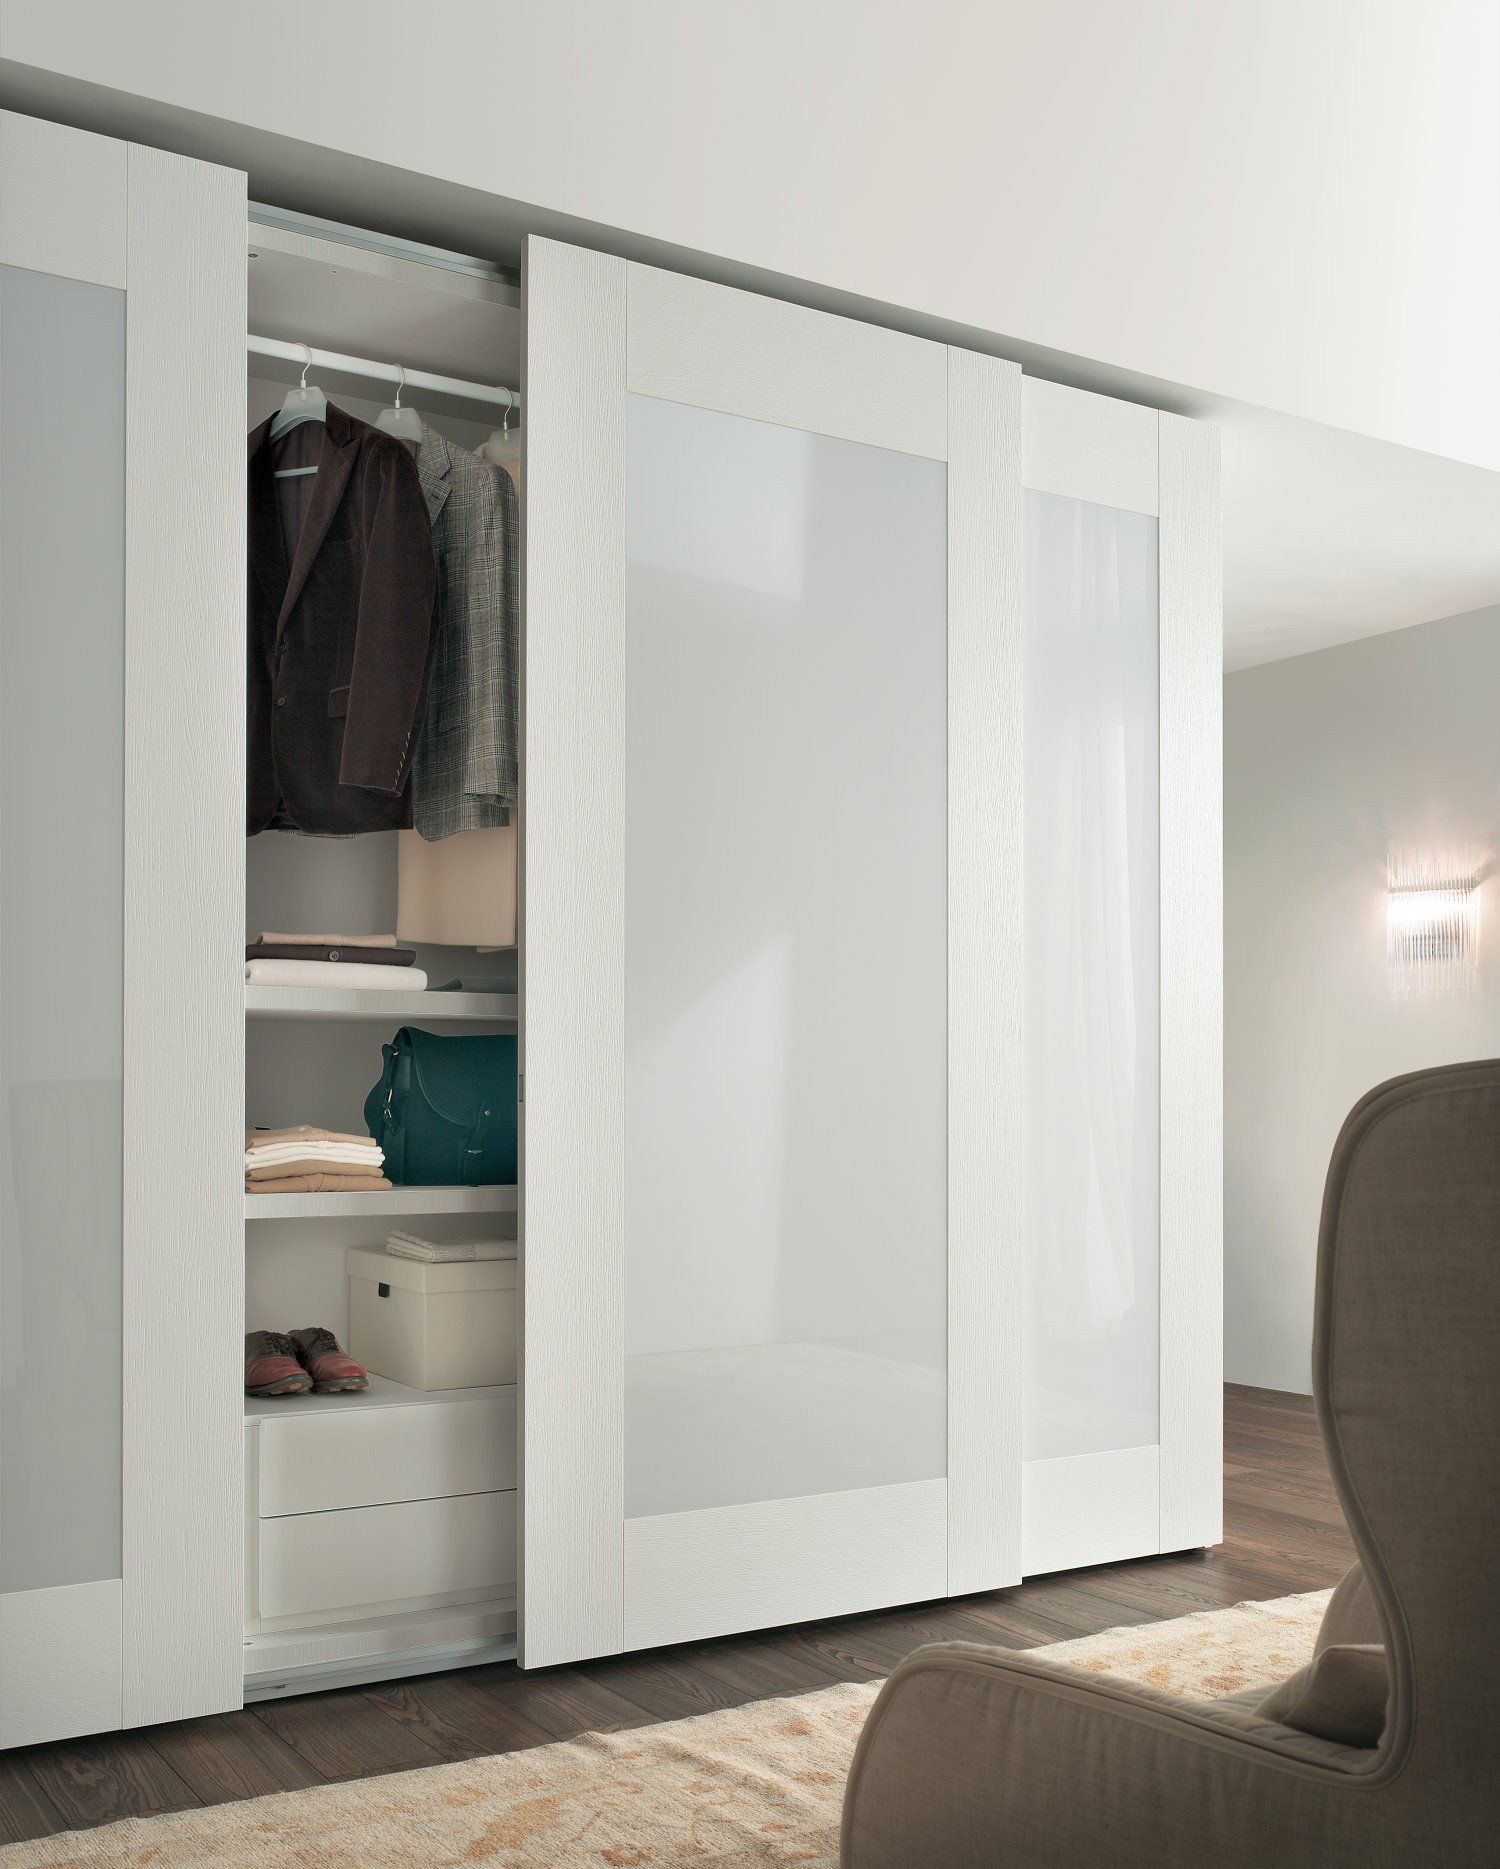 door of new system lyngdal your fresh design at wardrobes i assembly doors amusing sliding designs look image pax full wardrobe ikea photos in a youtube bedroom doorsy magnificent for size room create closet